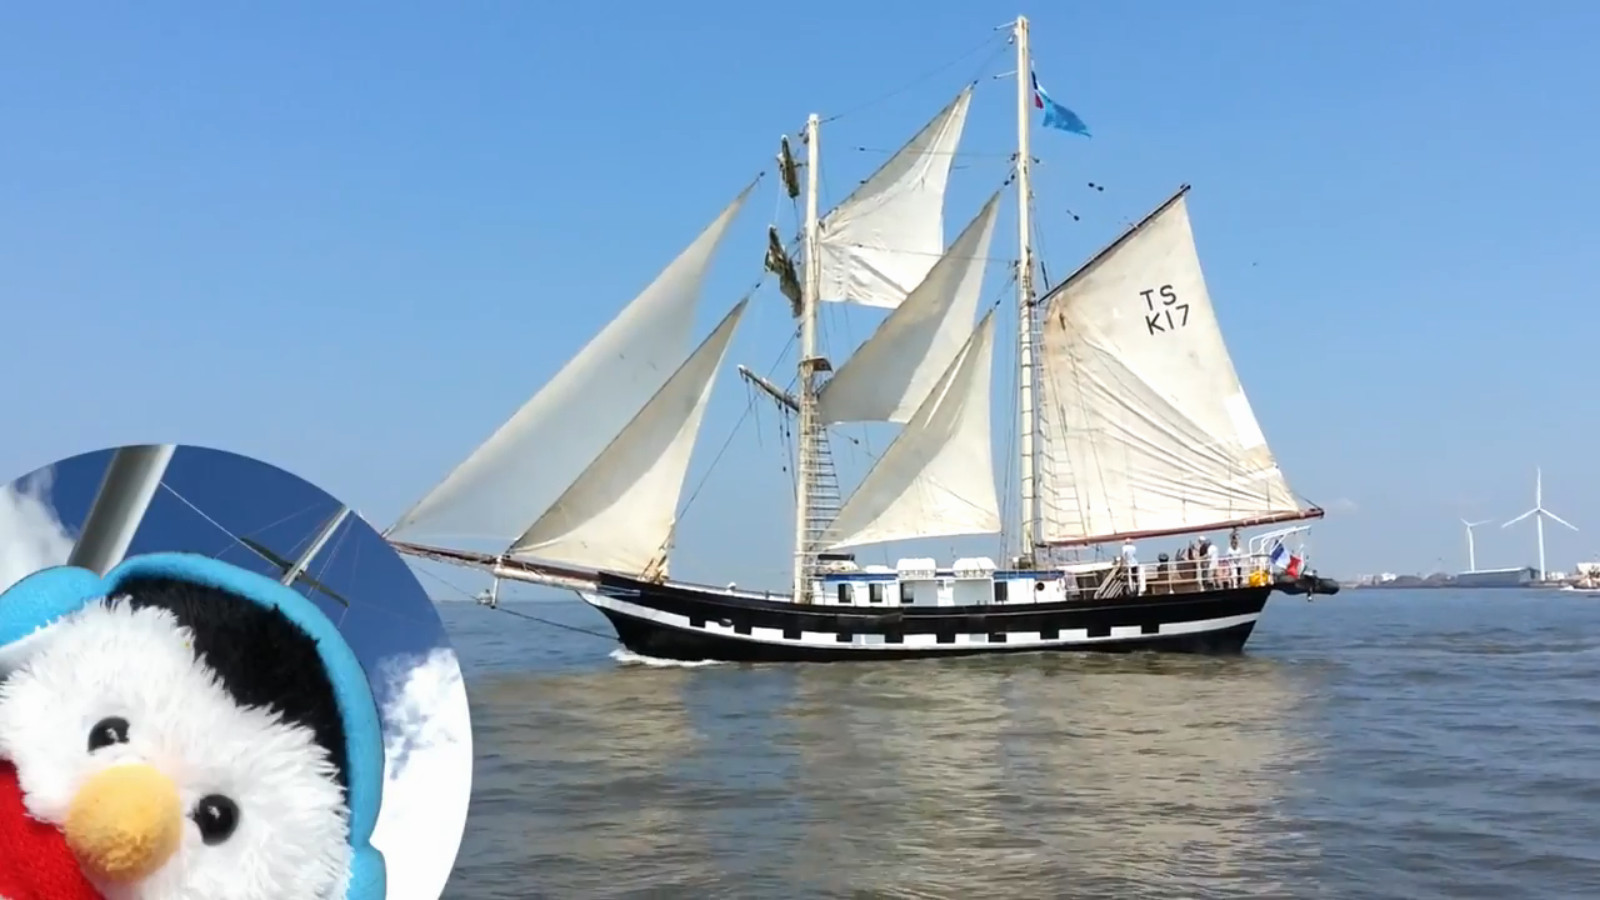 Watch our video Tall ships on the Mersey and add comments etc.